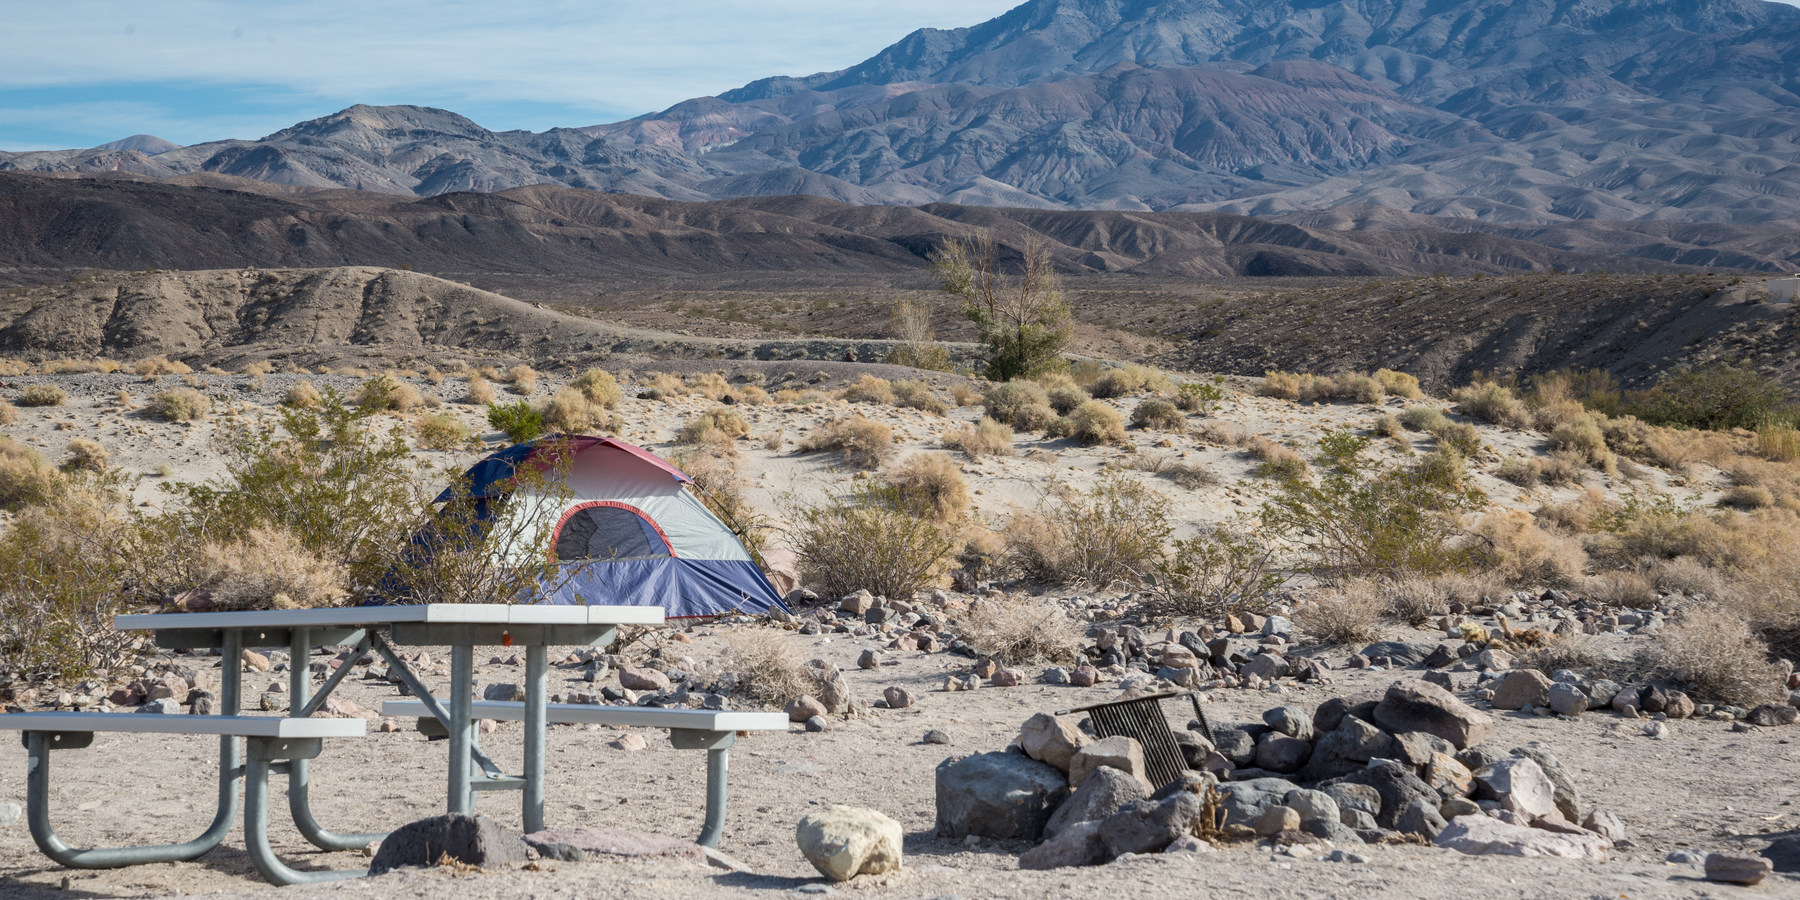 Camping in Death Valley National Park Outdoor Project